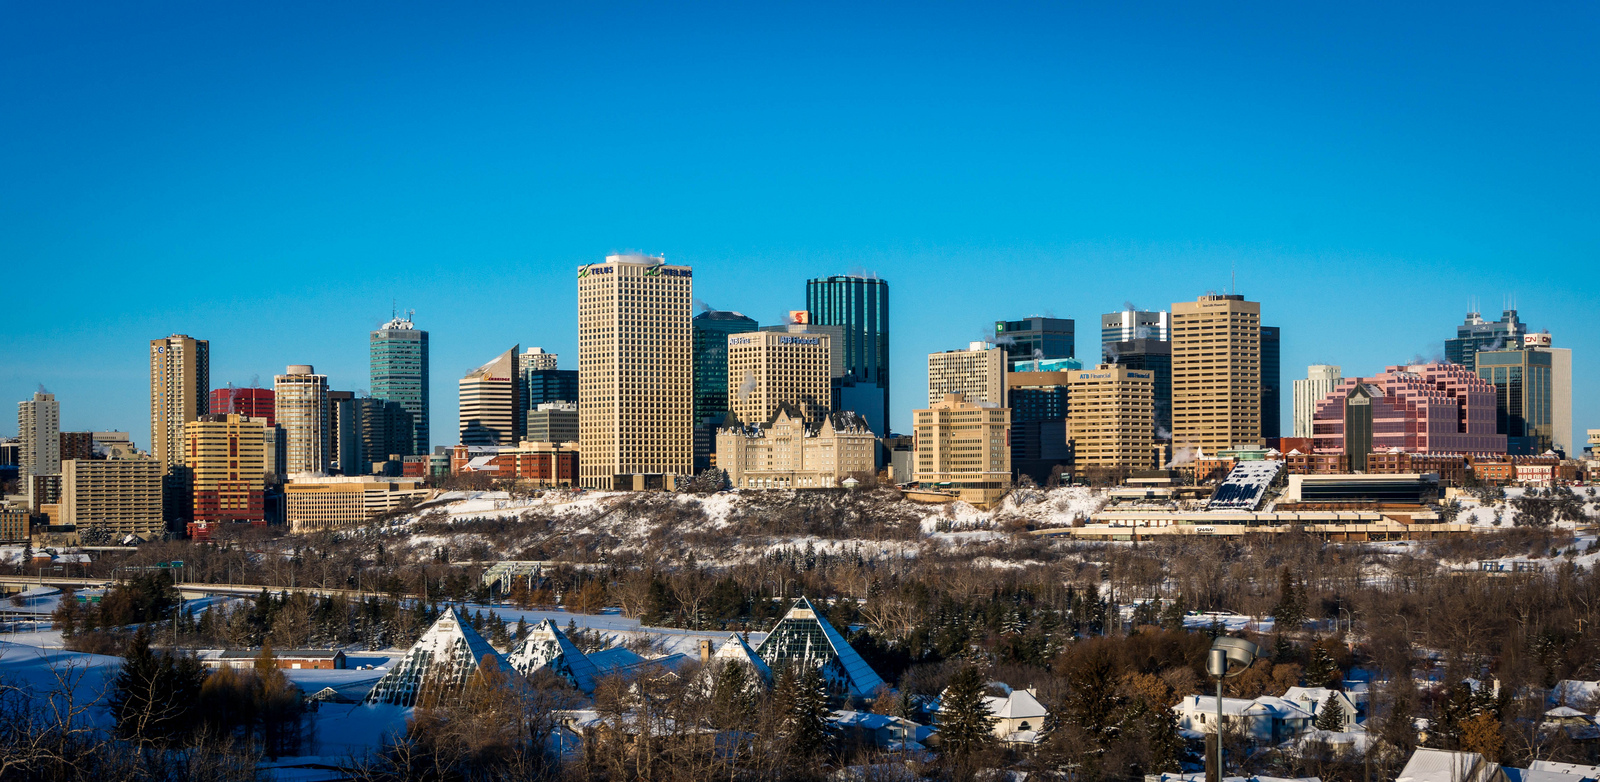 Edmonton has the highest unemployment rate of any Canadian city